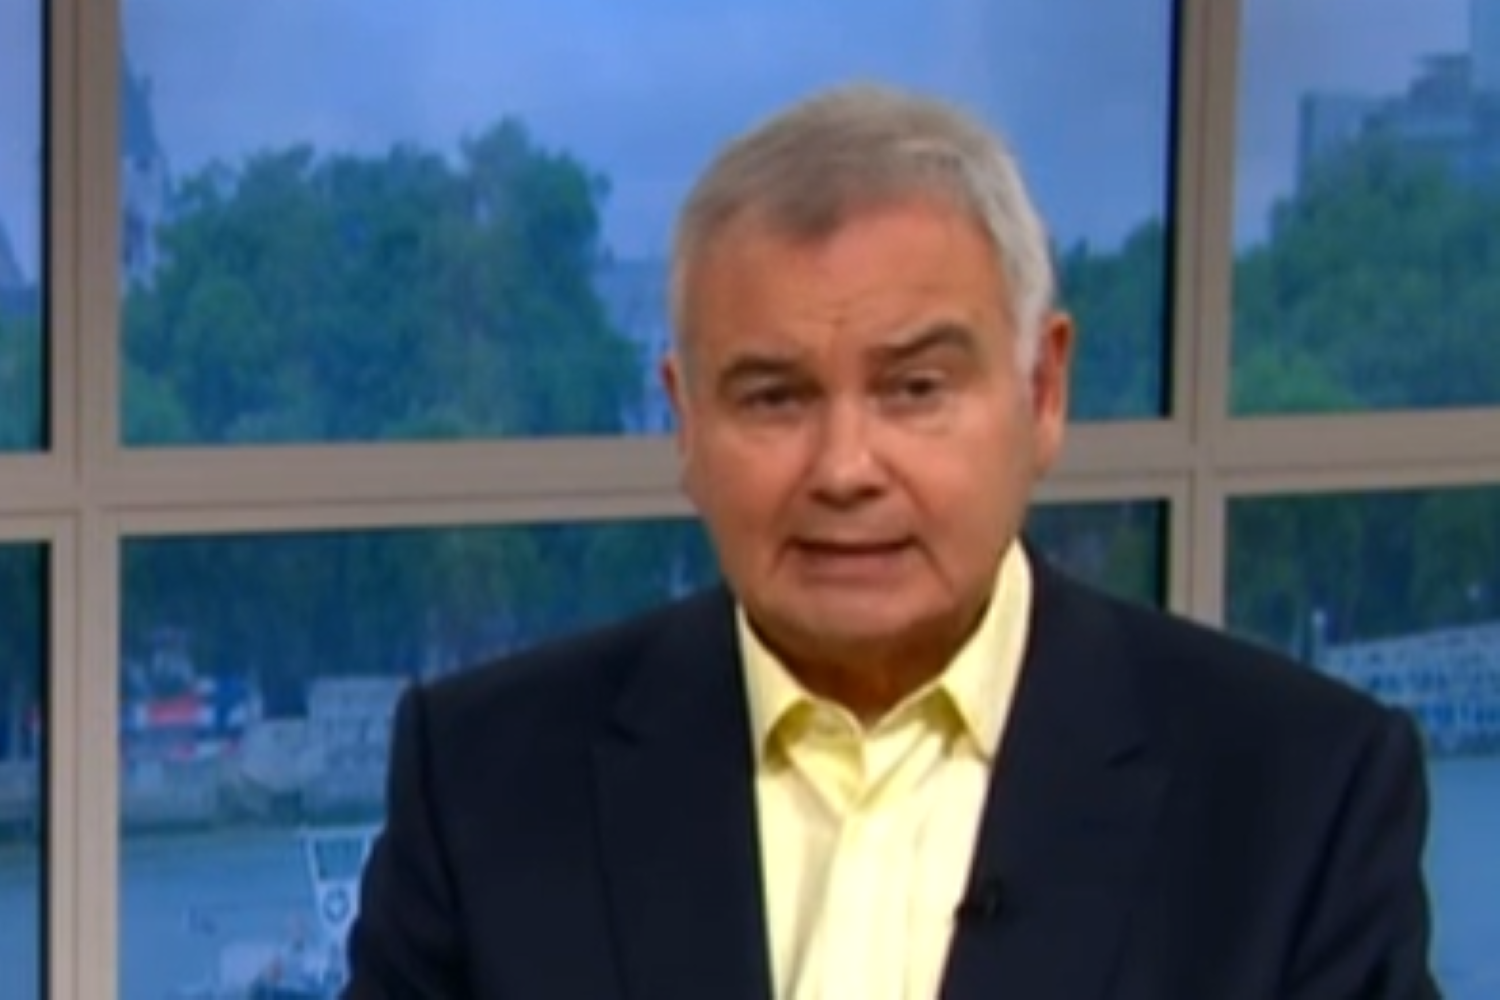 Eamonn Holmes 'insults' and 'body-shames' This Morning colleague and guests